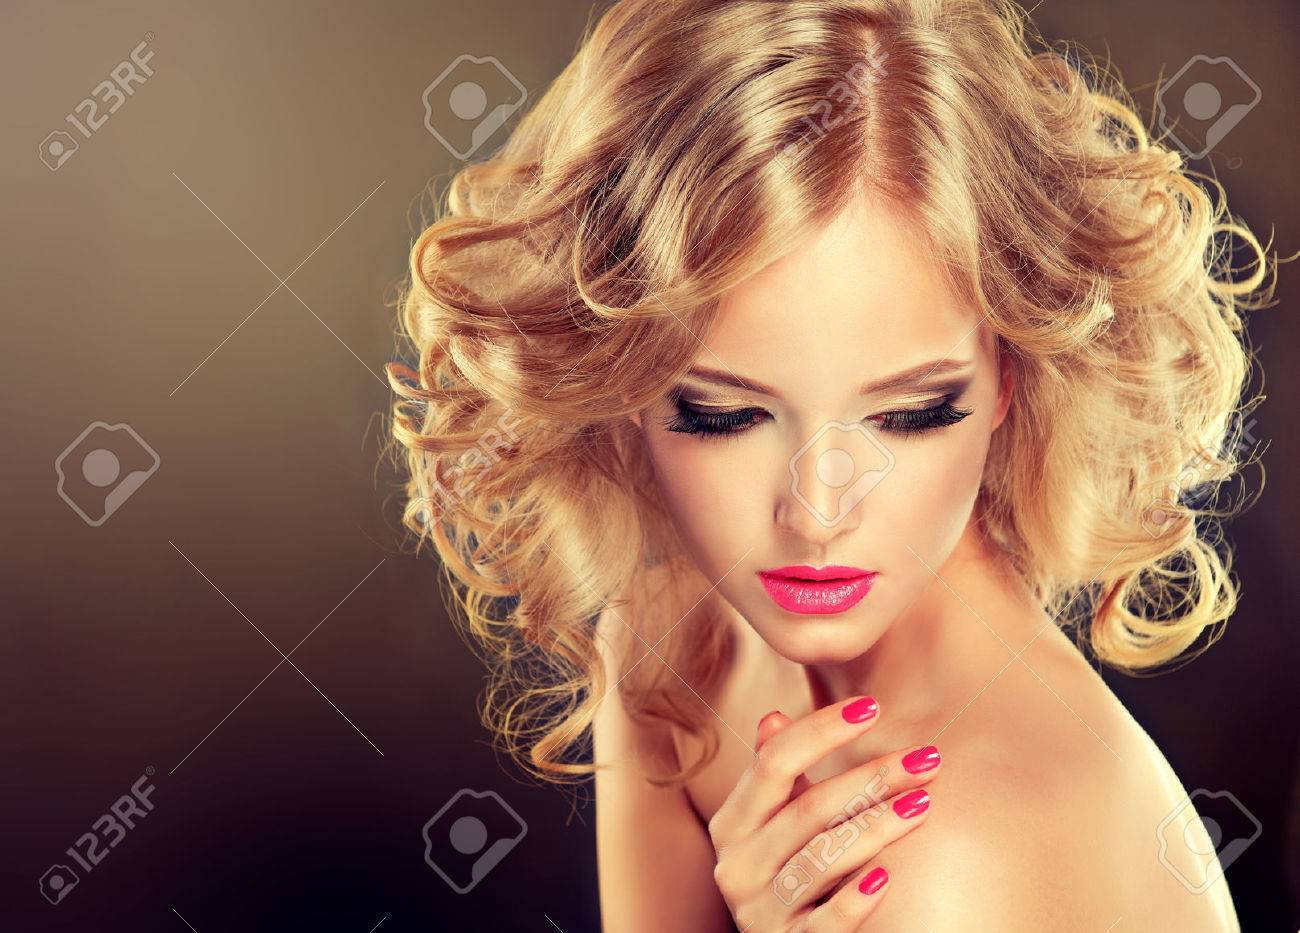 Pretty blonde girl with hairstyle curled hair .Luxury fashion style, manicure. - 47686169